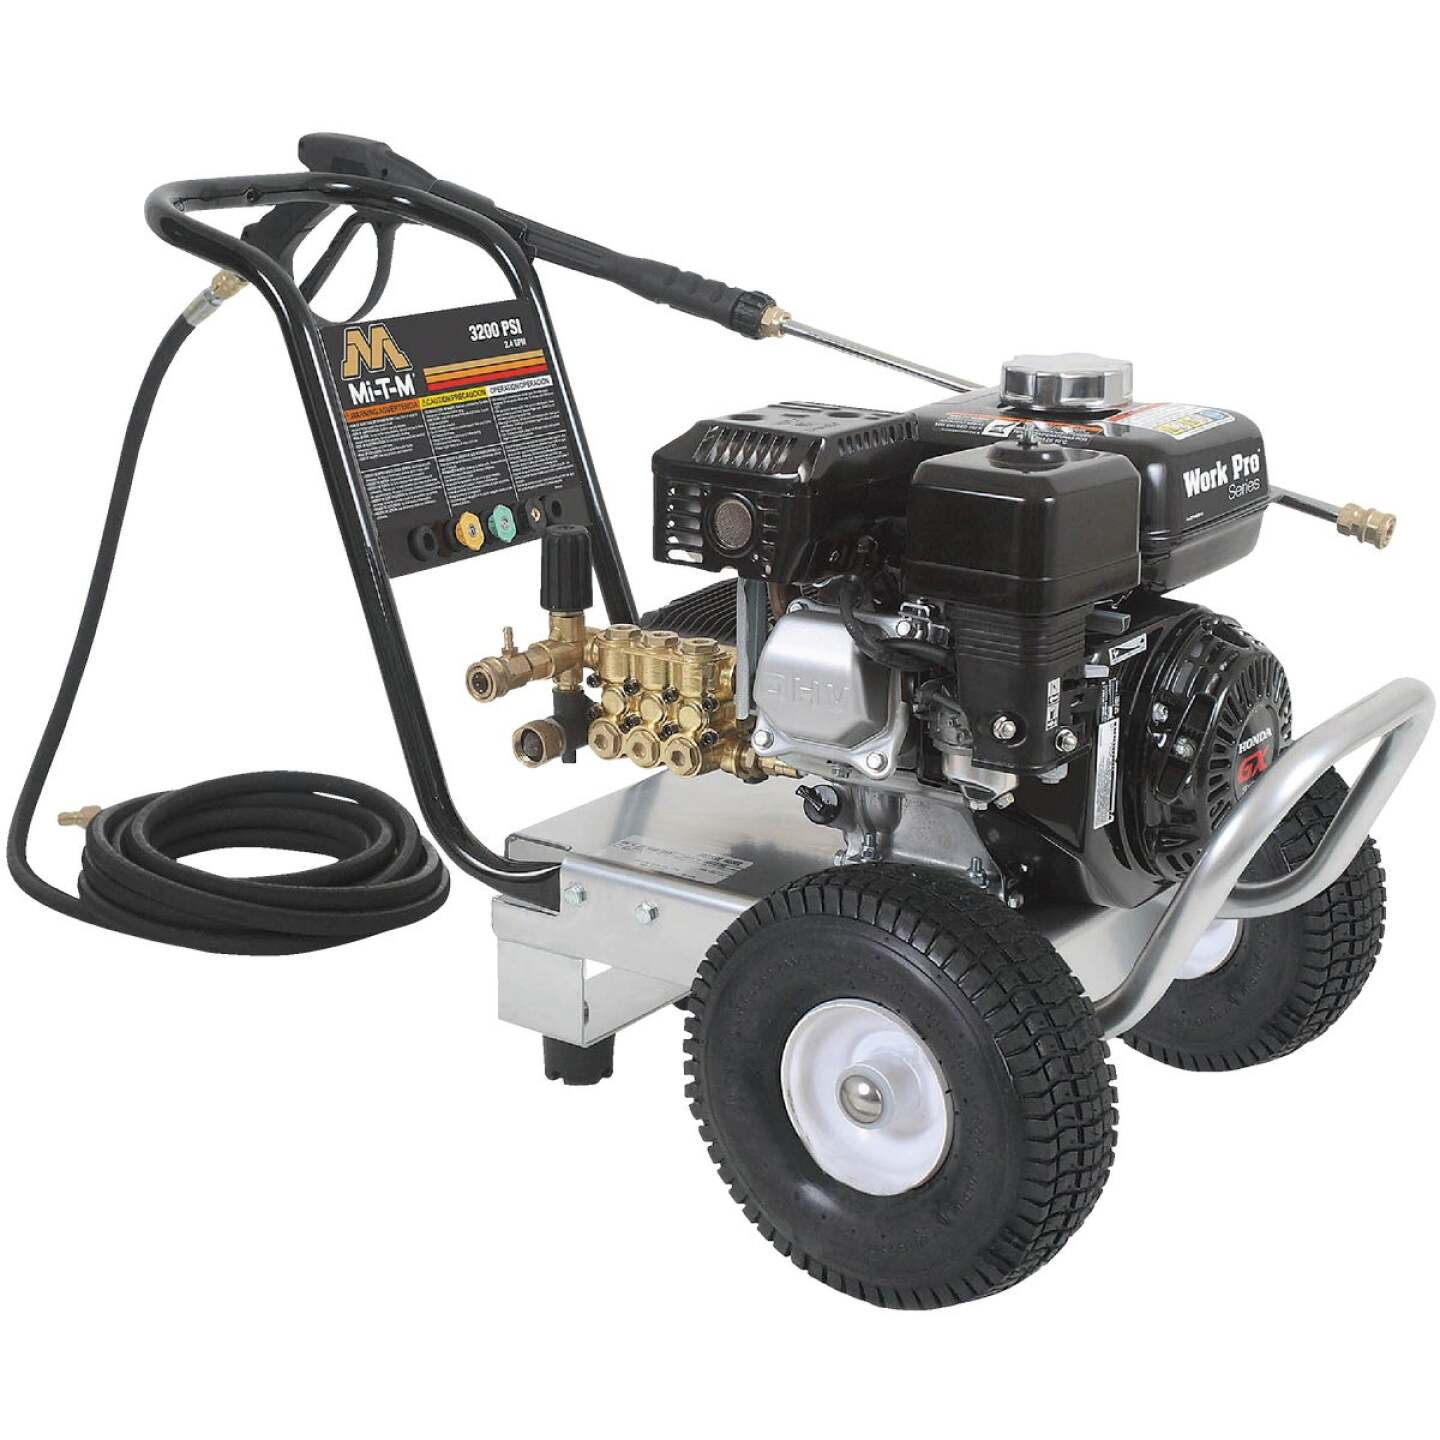 Mi-T-M Work Pro 3200 psi 2.4 GPM Cold Water Gas Pressure Washer Image 1